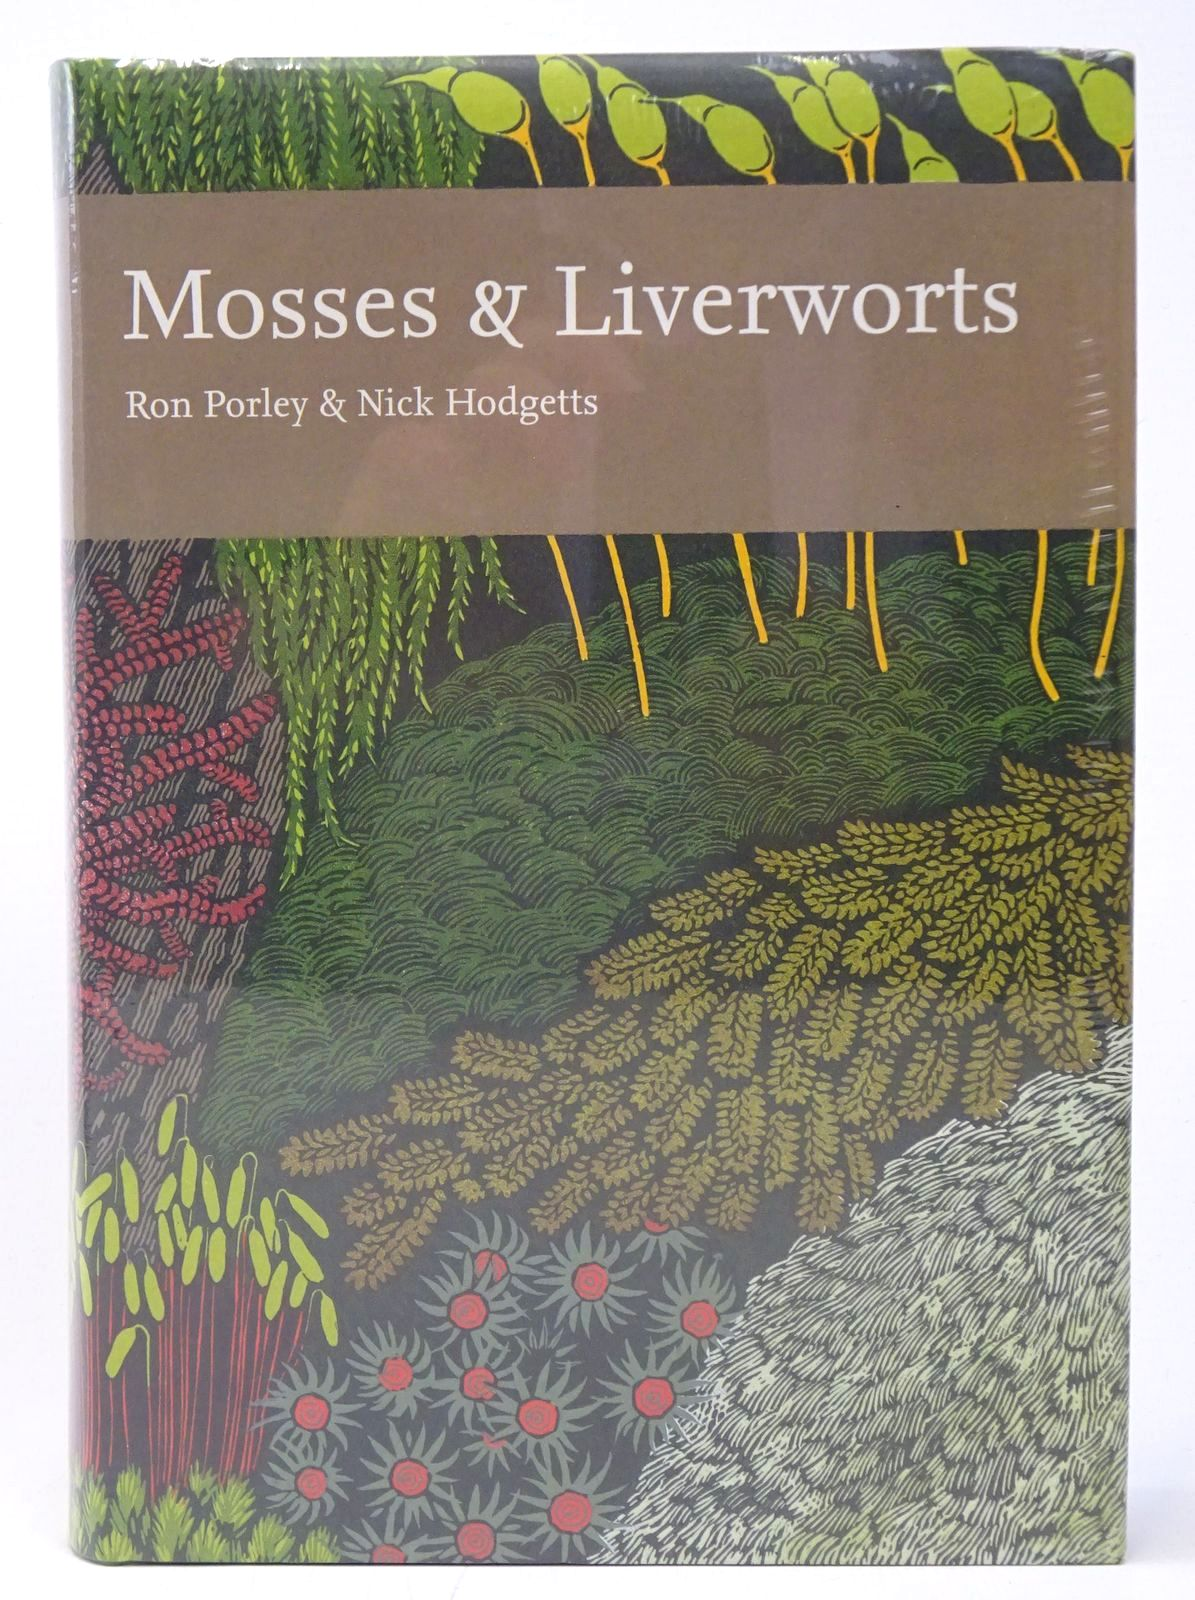 Photo of MOSSES & LIVERWORTS (NN 97) written by Porley, Ron Hodgetts, Nick published by Collins (STOCK CODE: 1317732)  for sale by Stella & Rose's Books